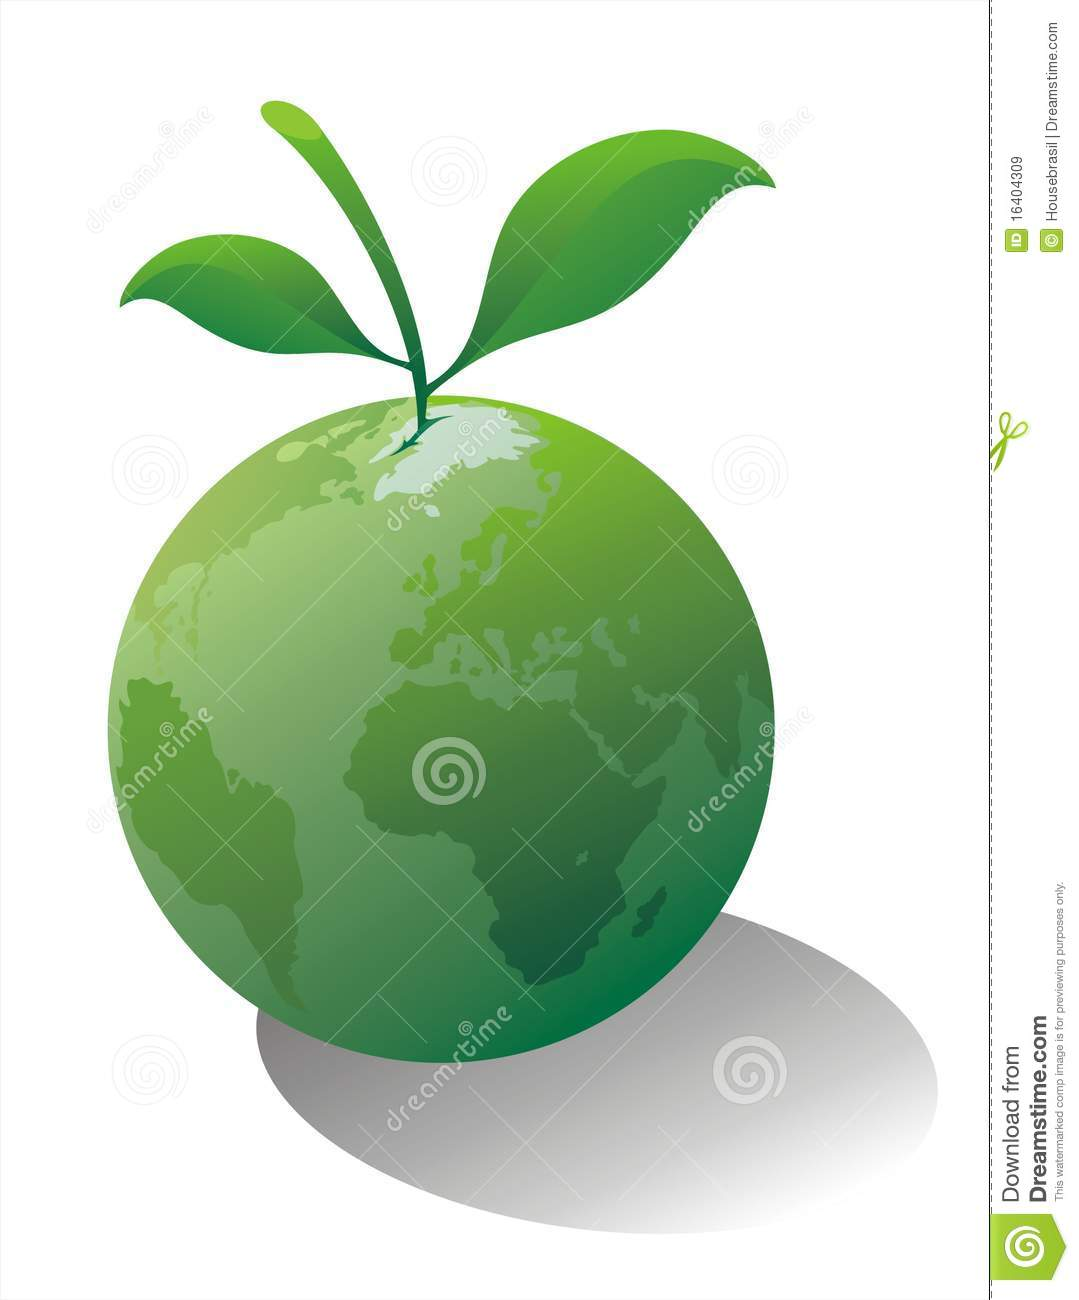 Earth As A Fruit Royalty Free Stock Images - Image: 16404309